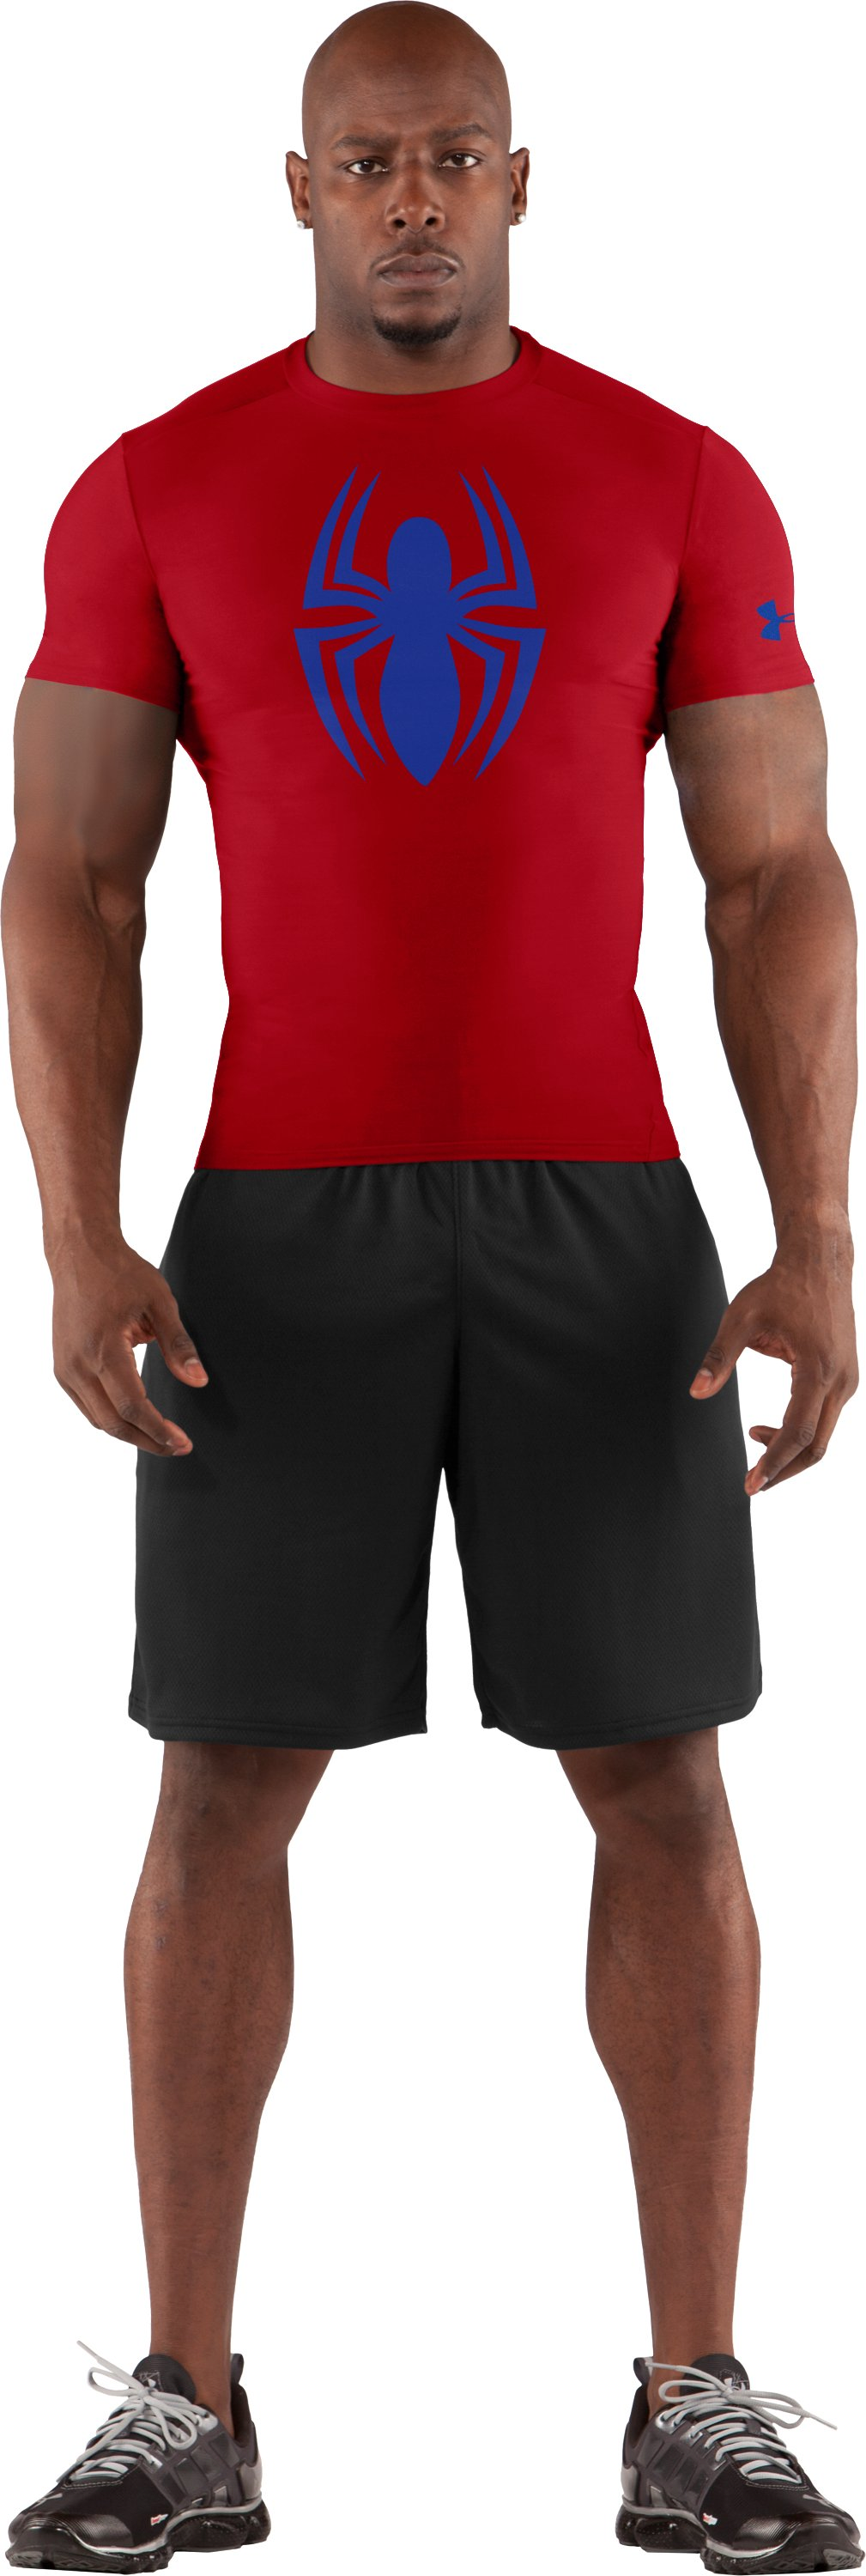 Men's Under Armour® Alter Ego Compression Shirt, Red, Front